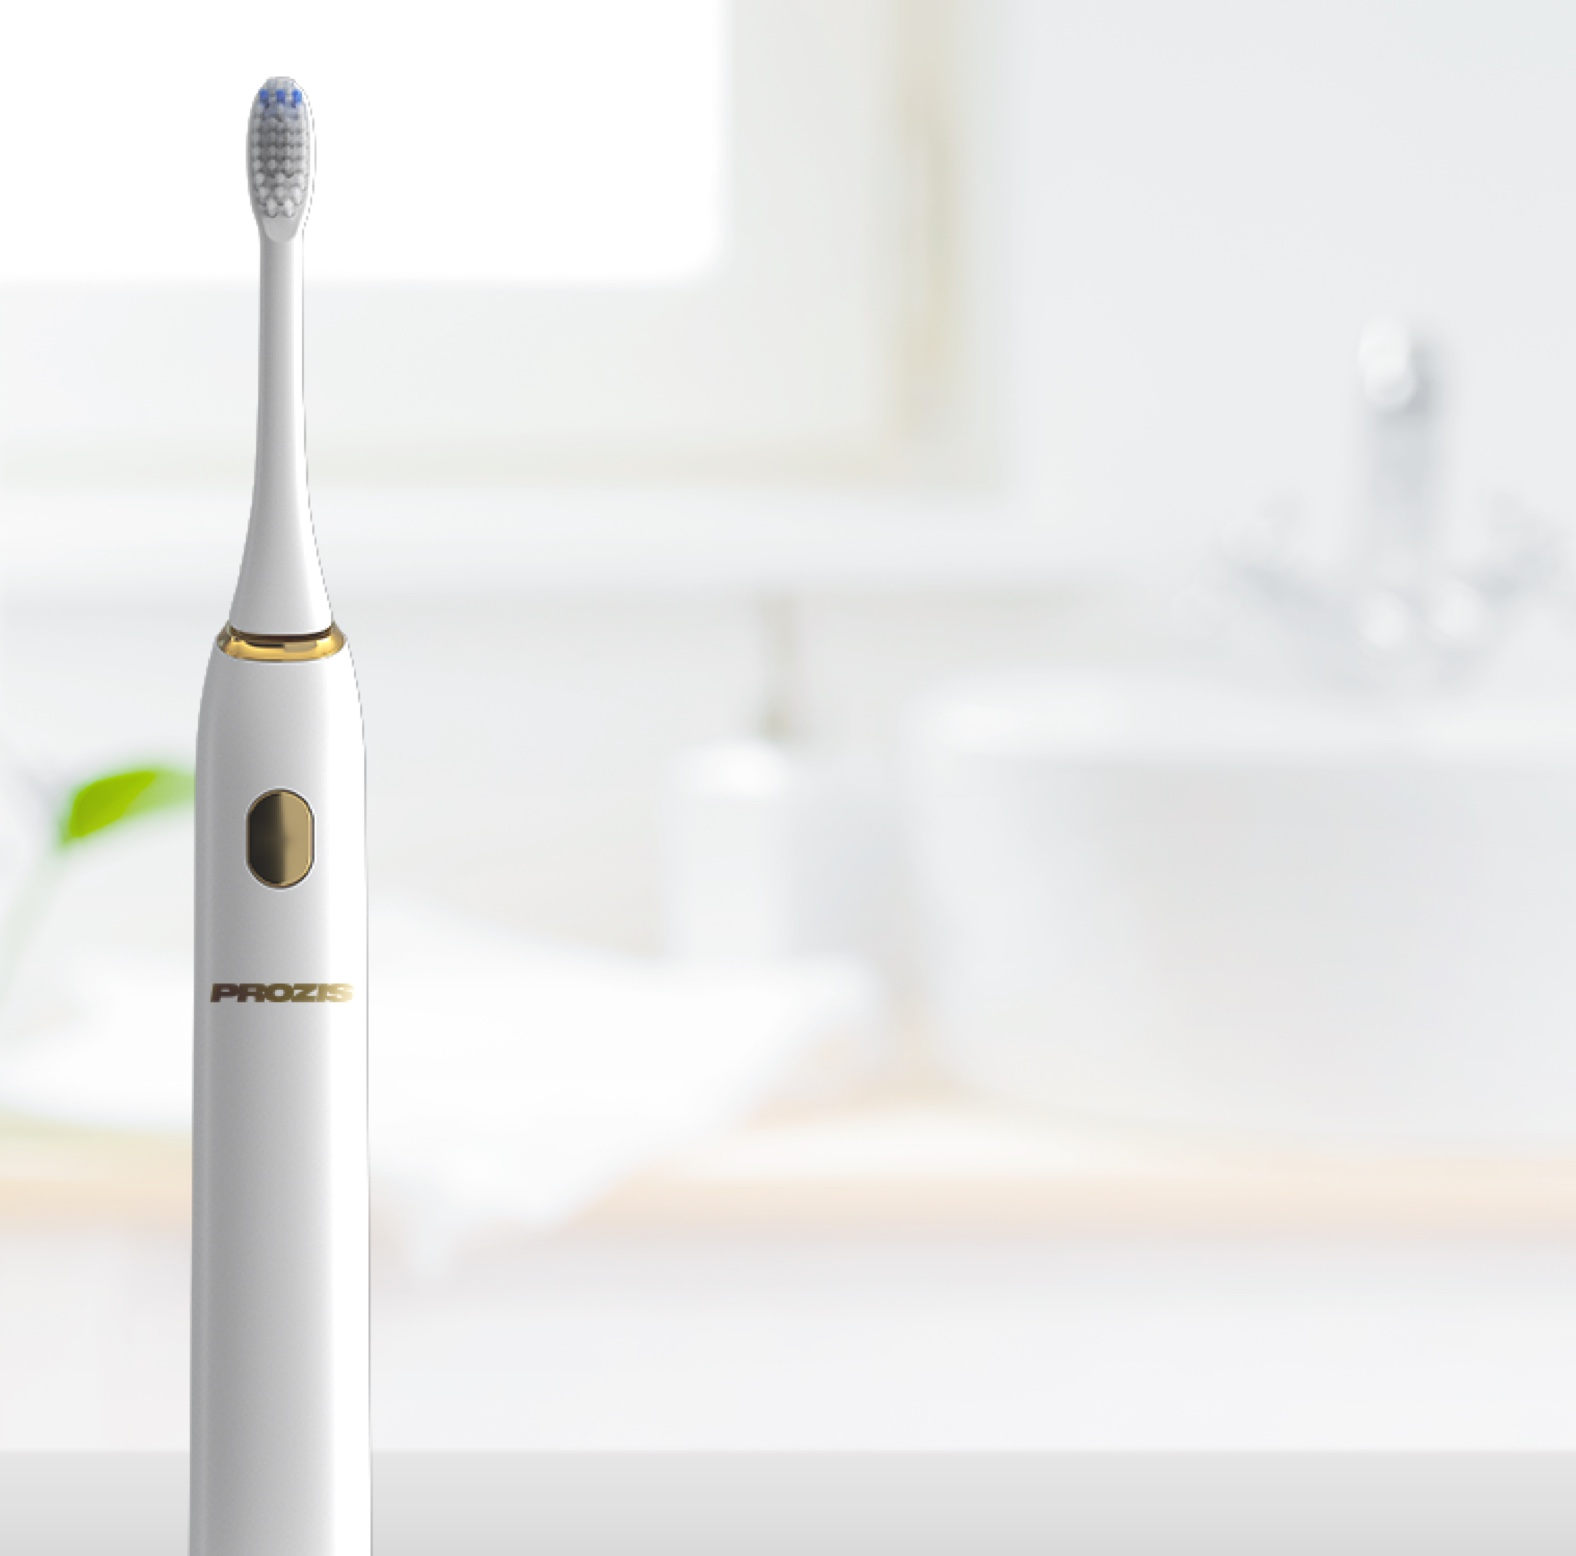 Ultrasonic Toothbrush B-1 Black